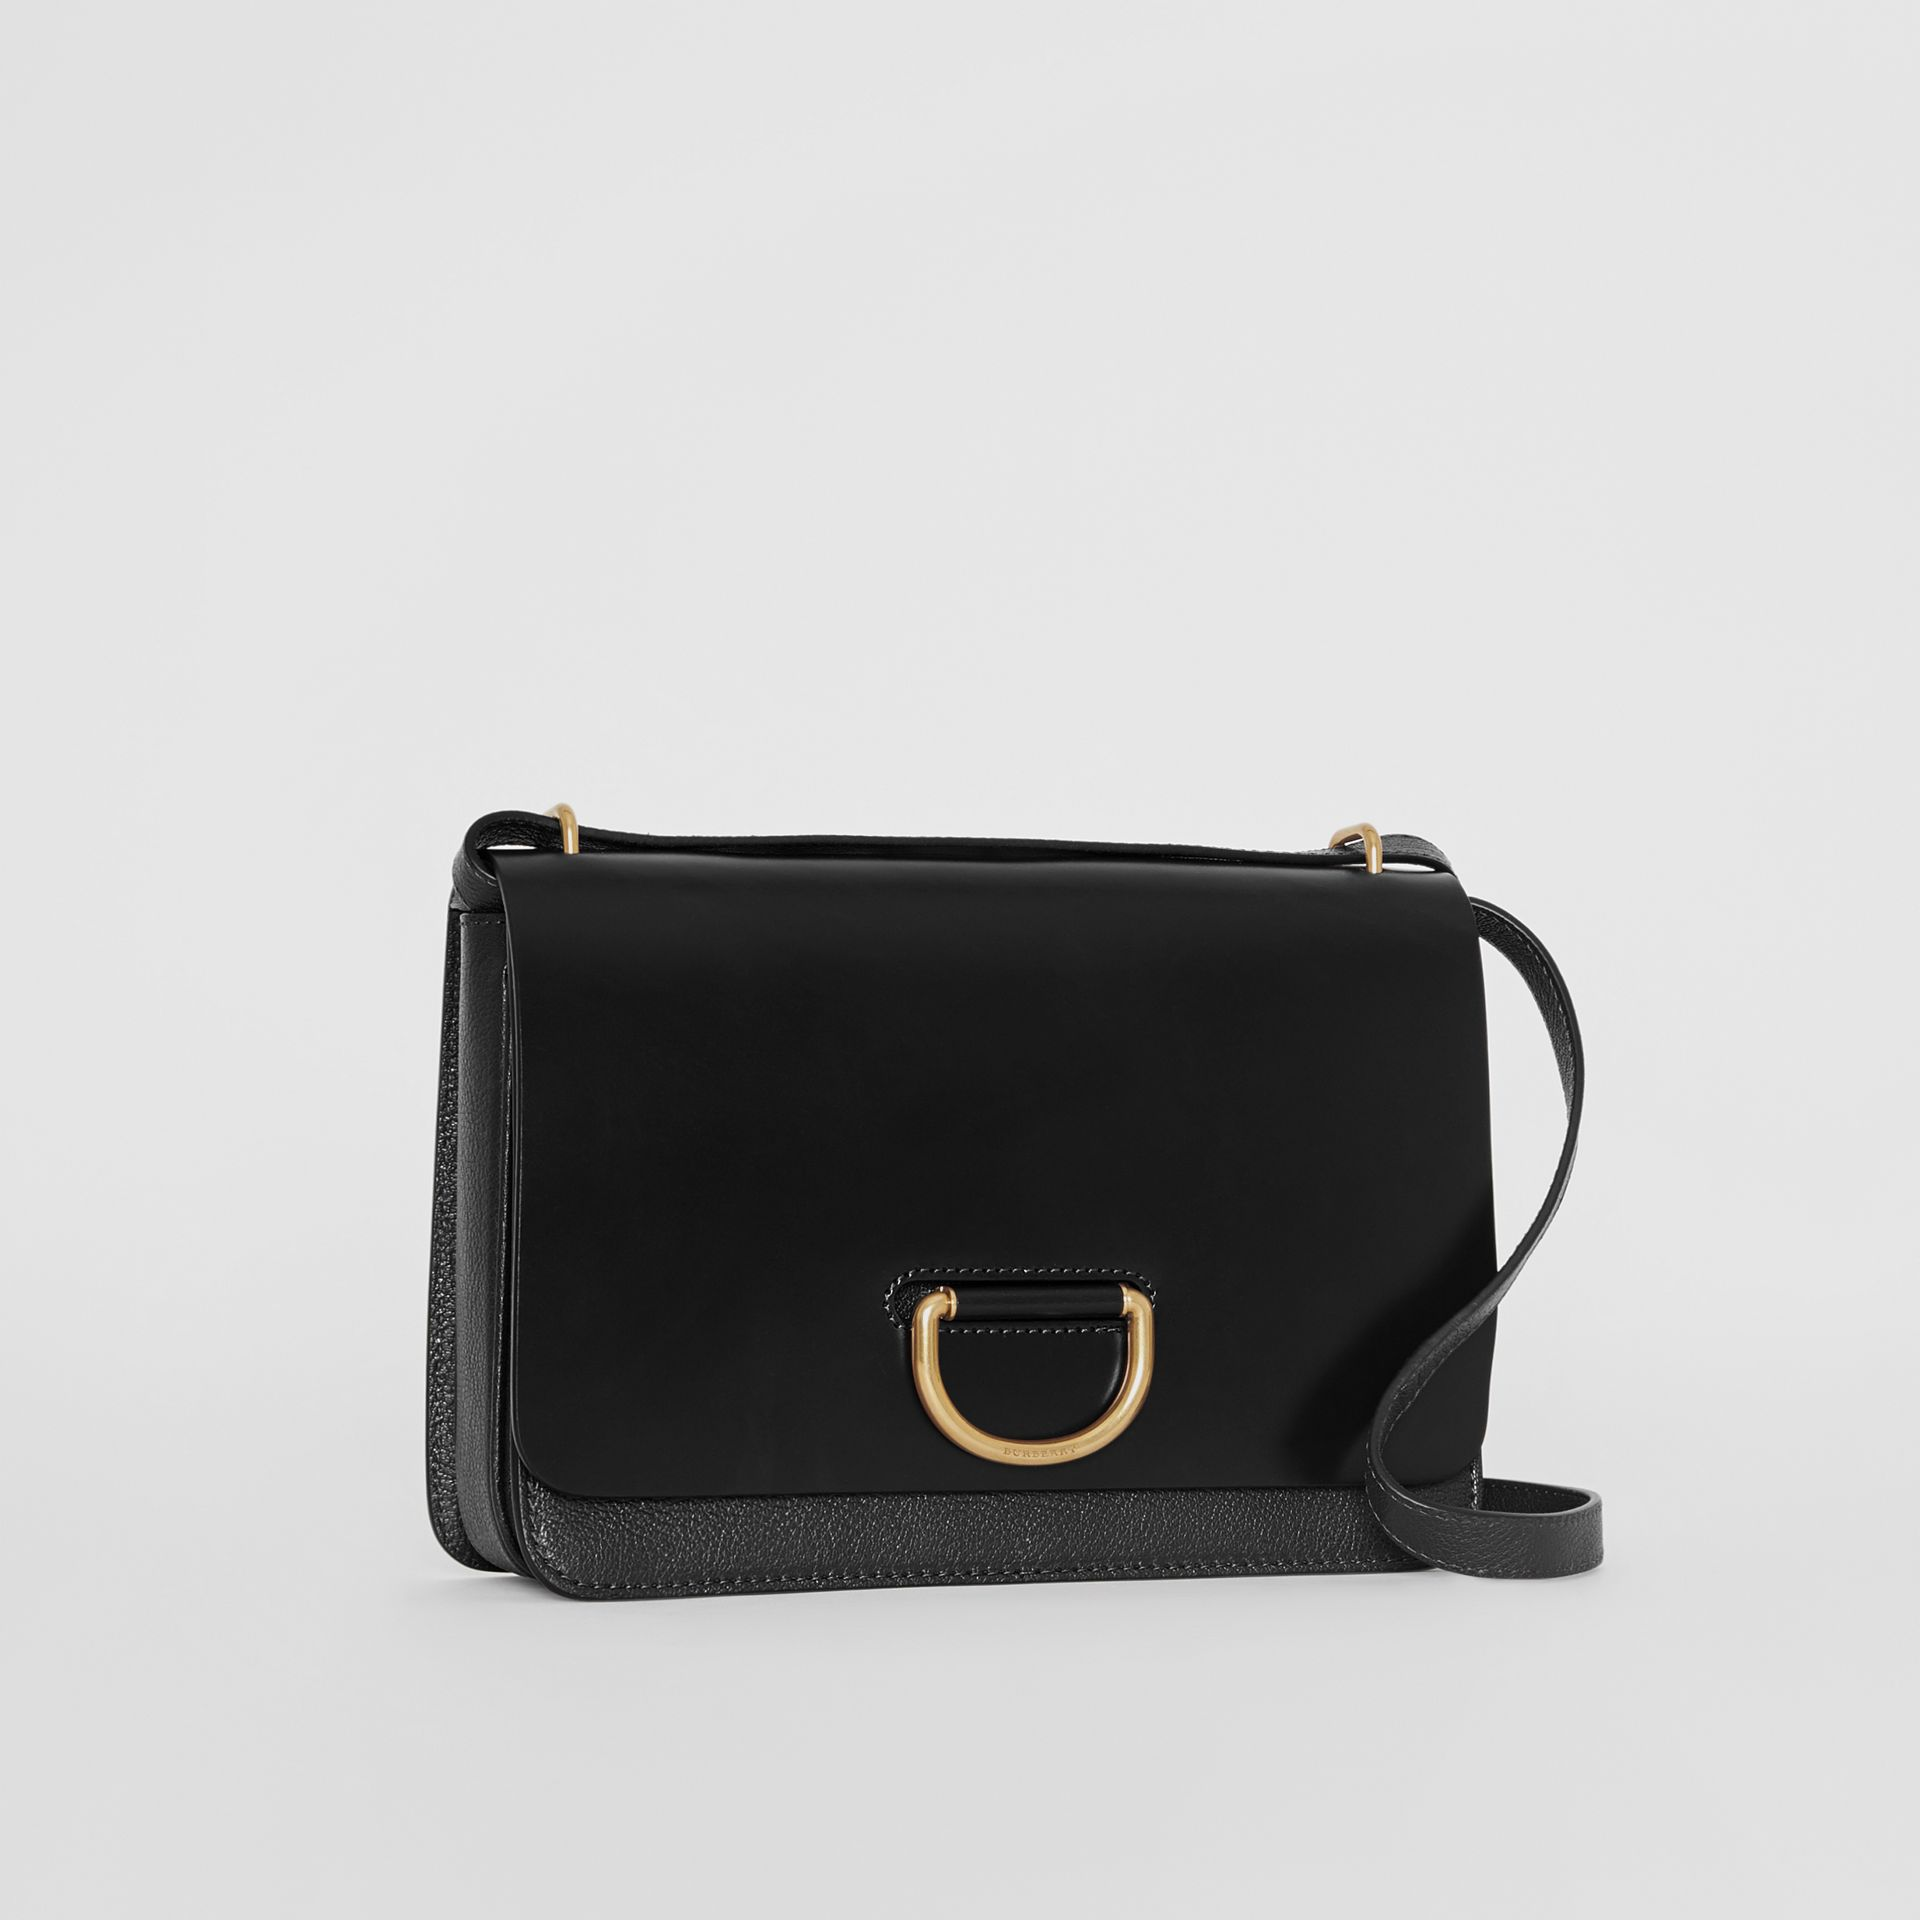 Sac The D-ring moyen en cuir (Noir) - Femme | Burberry - photo de la galerie 7